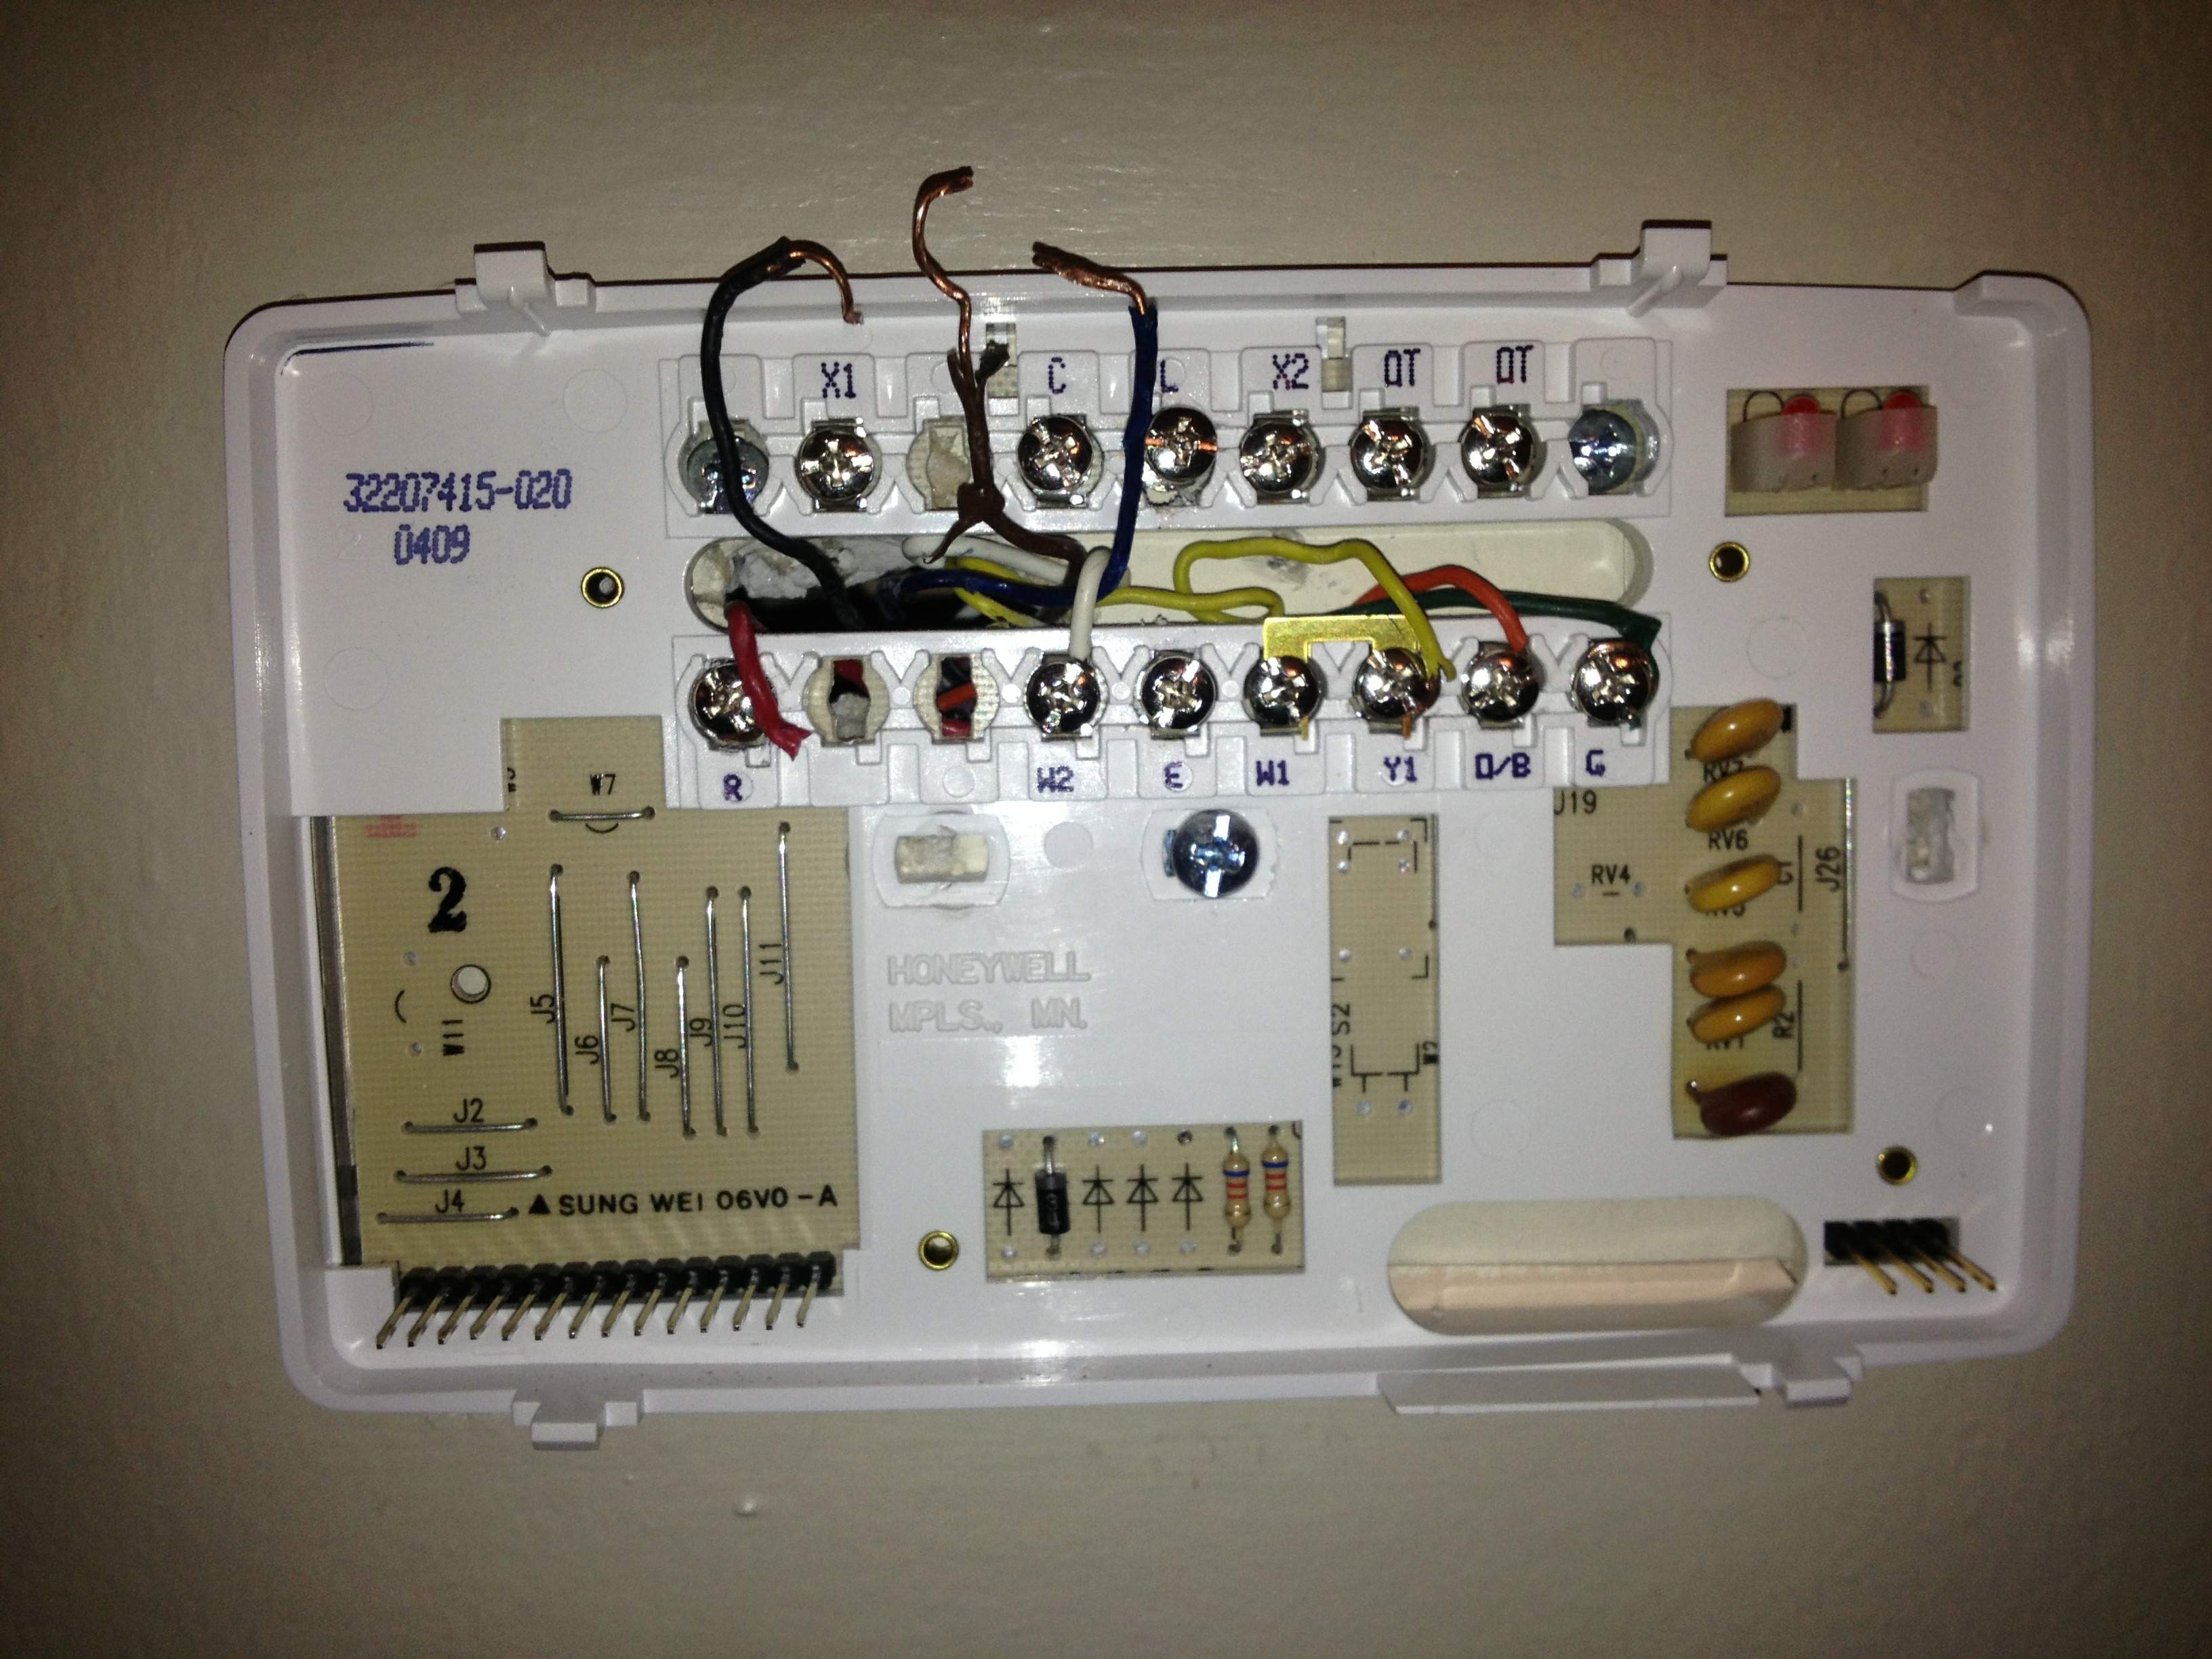 Honeywell Heat Pump thermostat Wiring Diagram Honeywell Heat Pump thermostat Wiring Diagram Reference Honeywell Of Honeywell Heat Pump thermostat Wiring Diagram